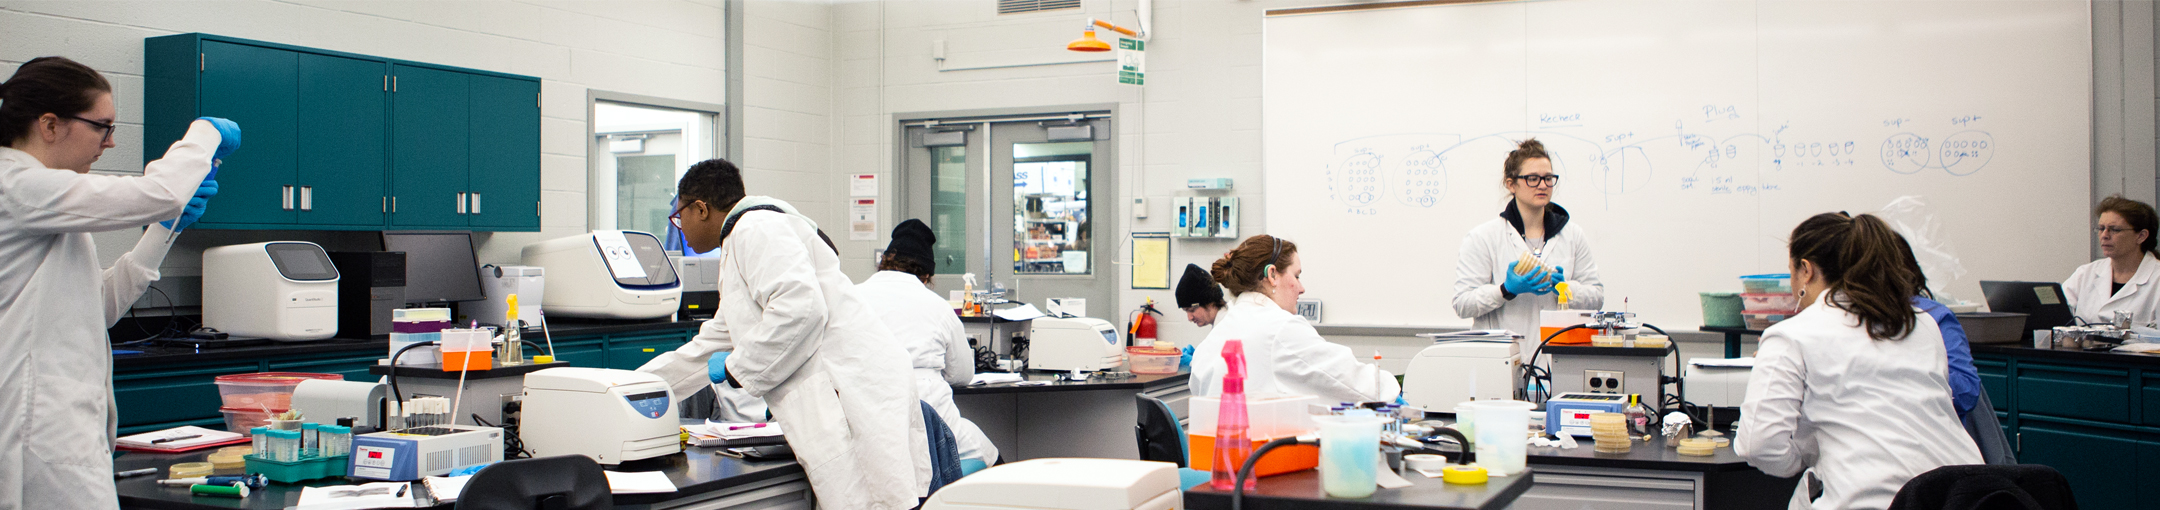 students working in genomics lab during class